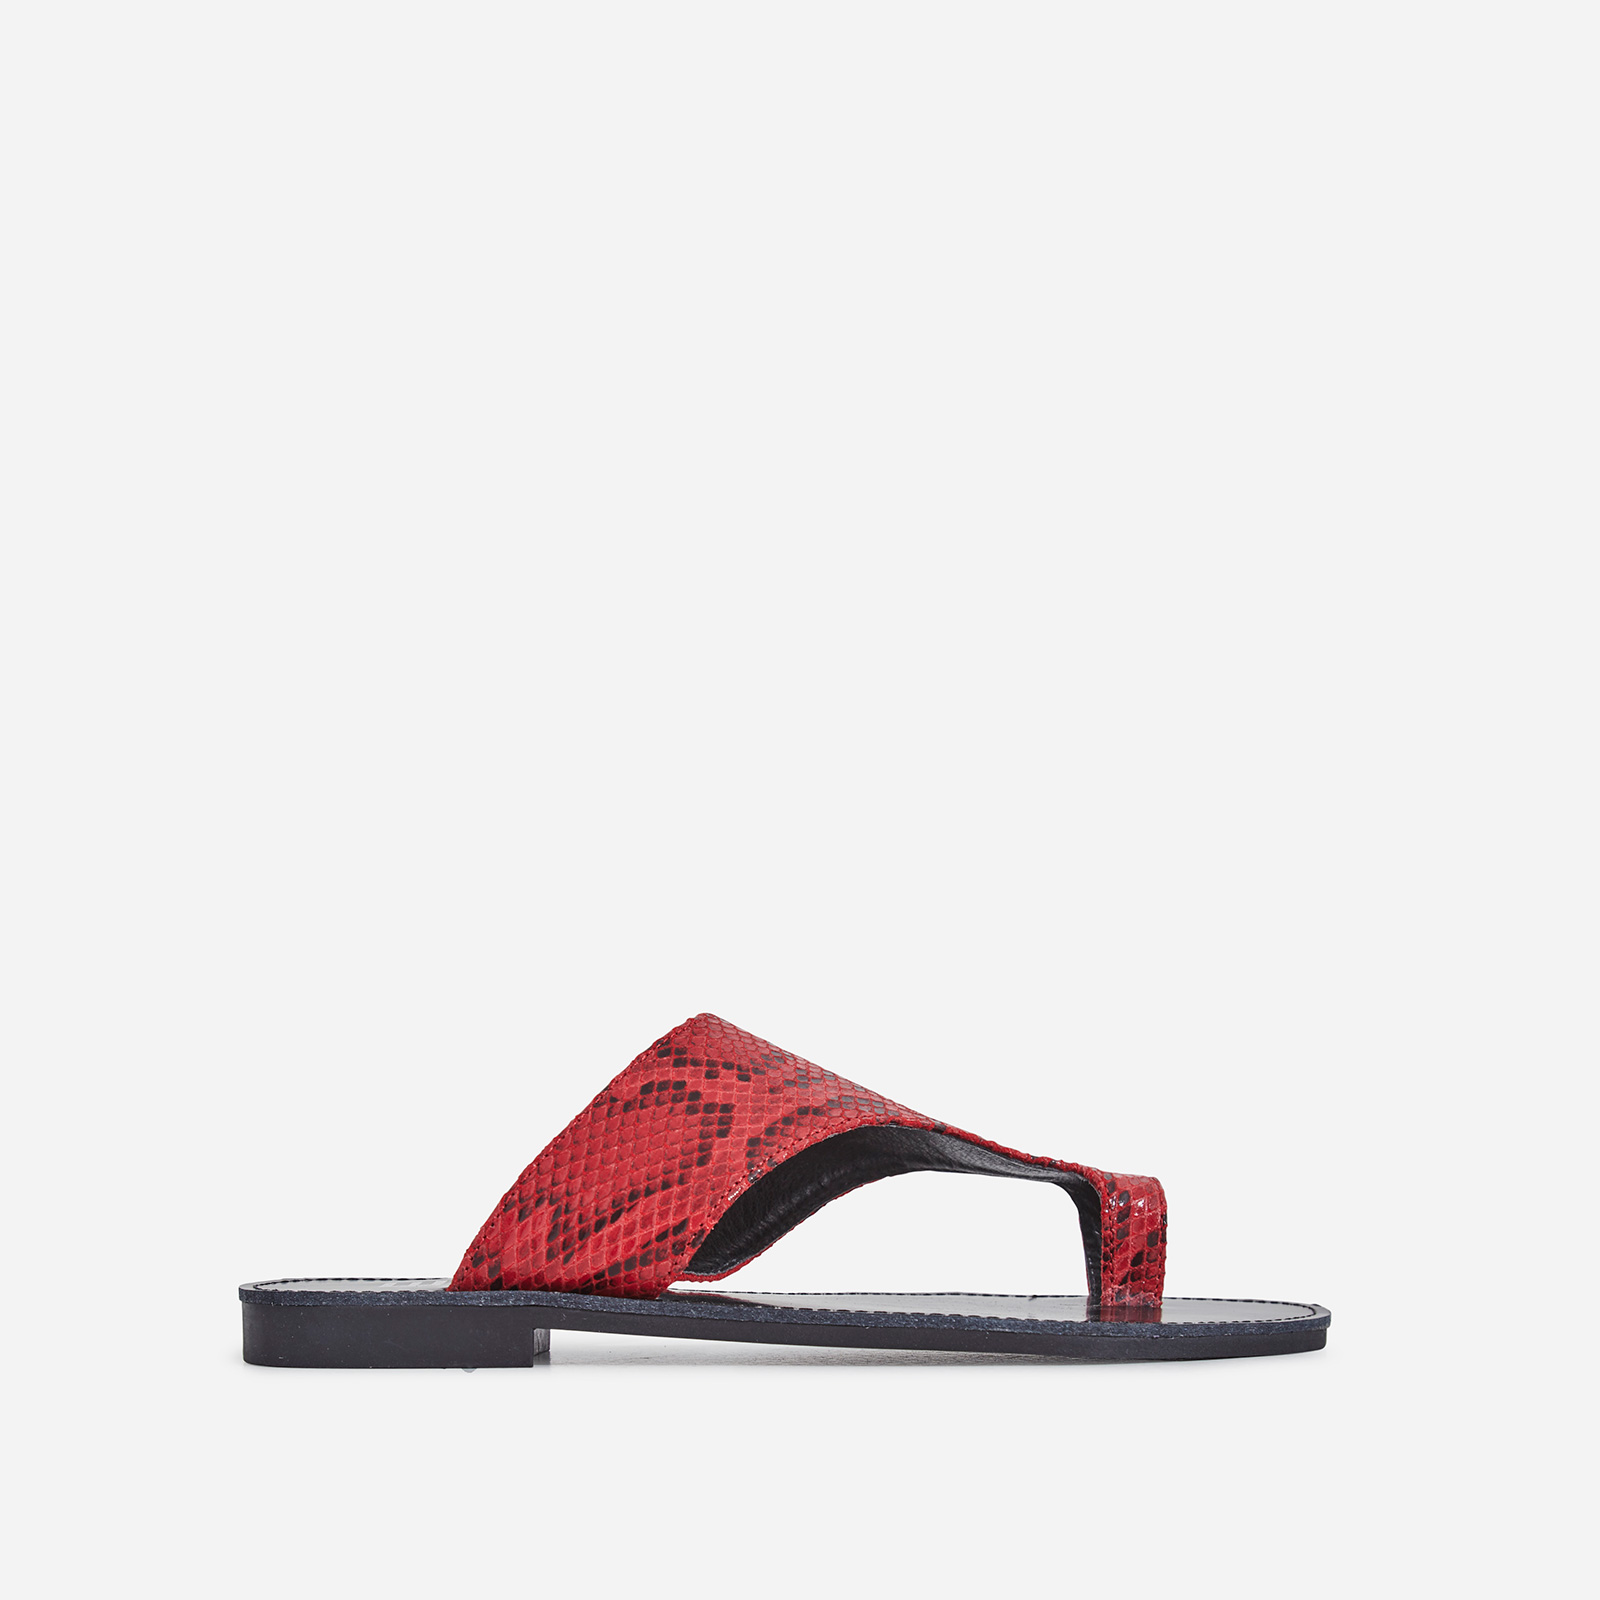 Cleo Toe Strap Slider In Red Snake Print Faux Leather